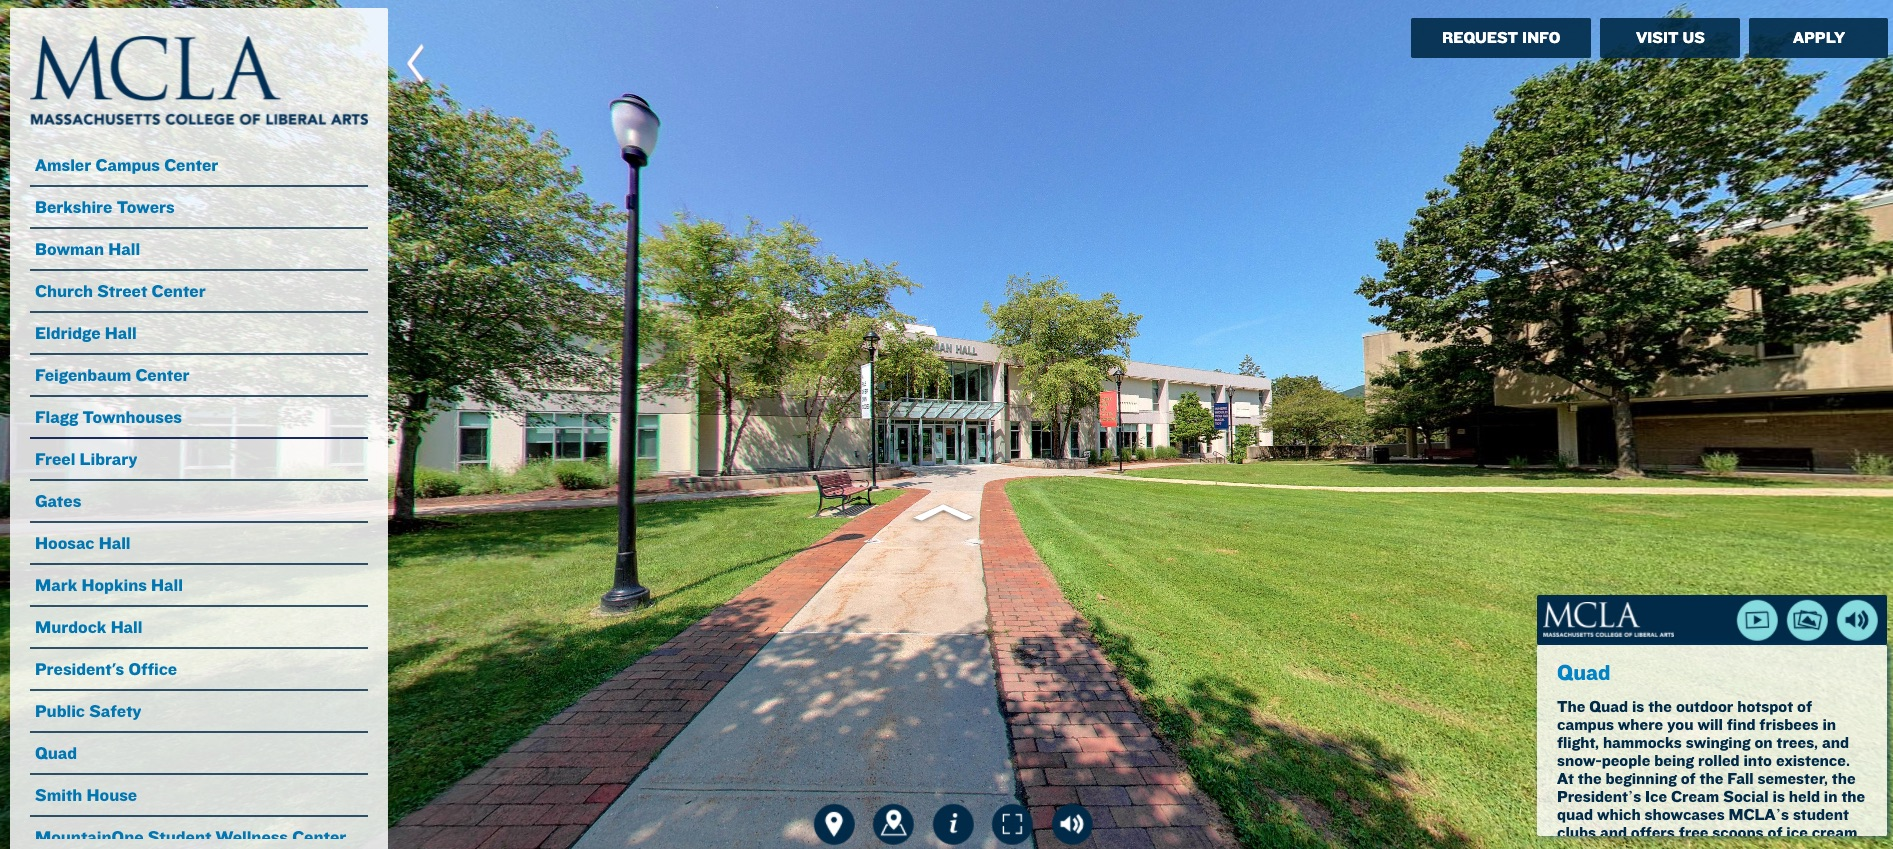 Students interested in visiting MCLA can now preview the campus by walking through it online. MCLA's Office of Admission has released a new virtual tour that lets students explore the campus and tour classrooms, residence areas, and other campus landmarks.